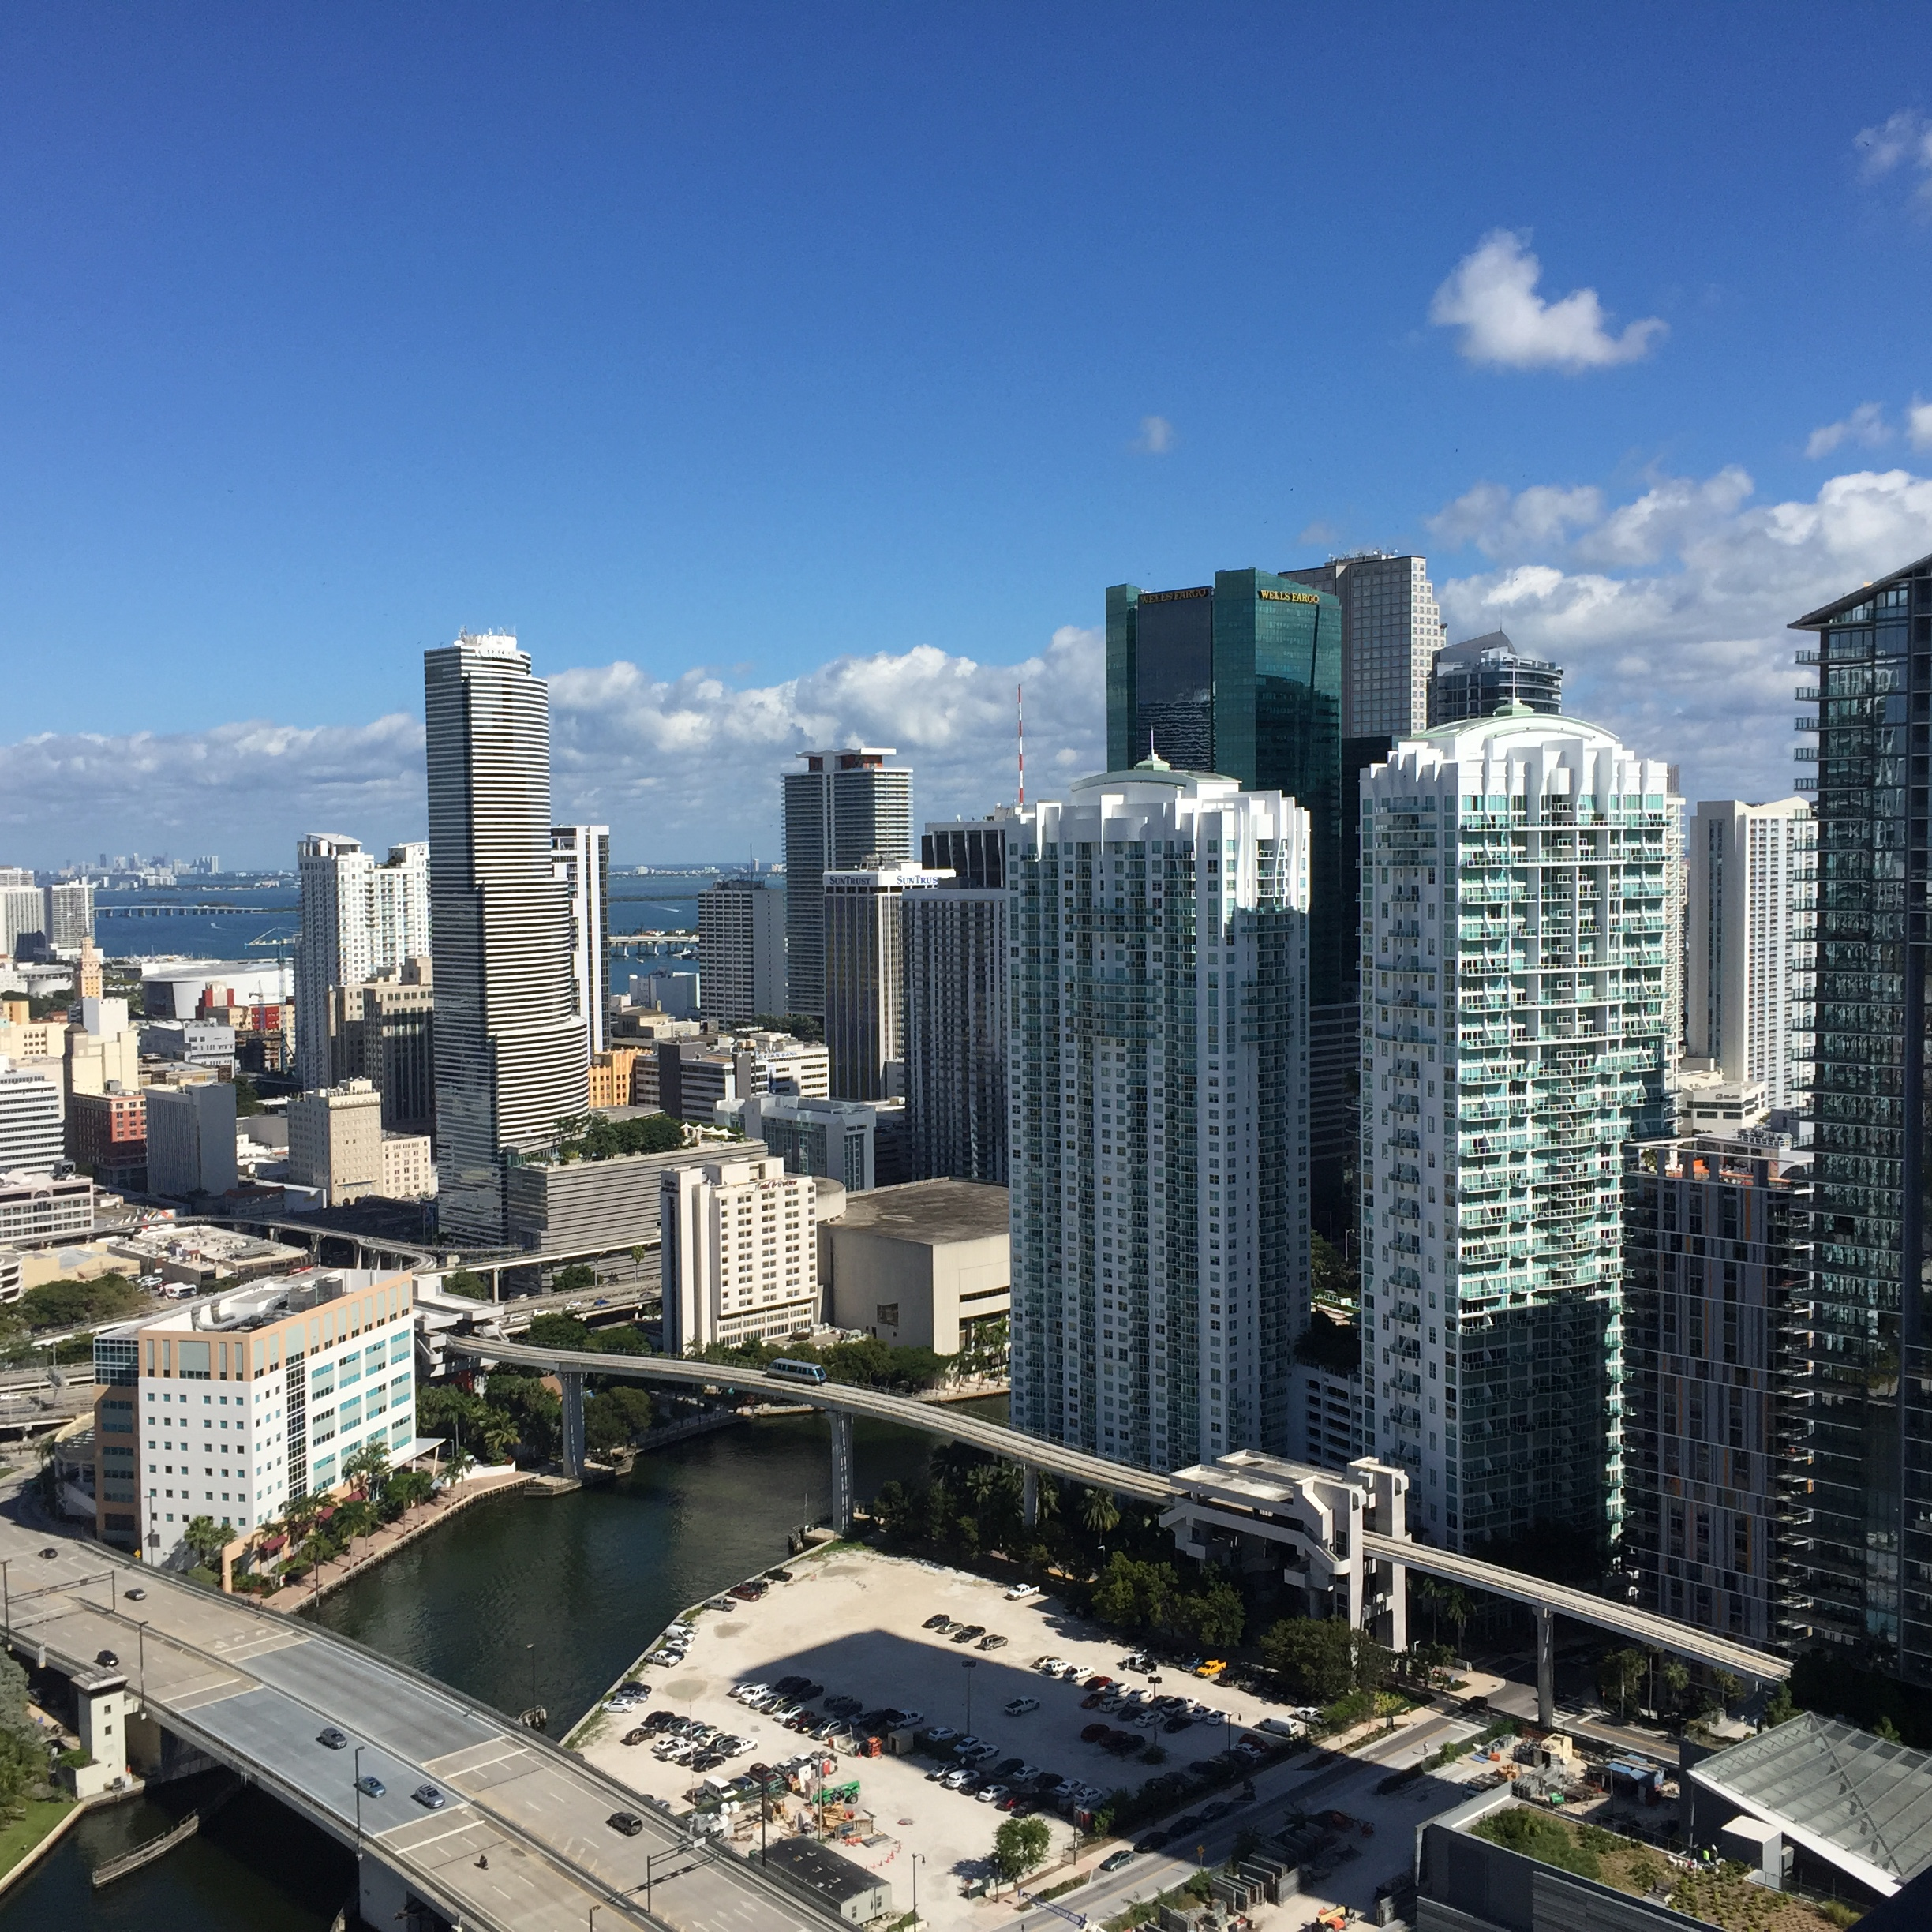 View from REACH at the Brickell City Centre